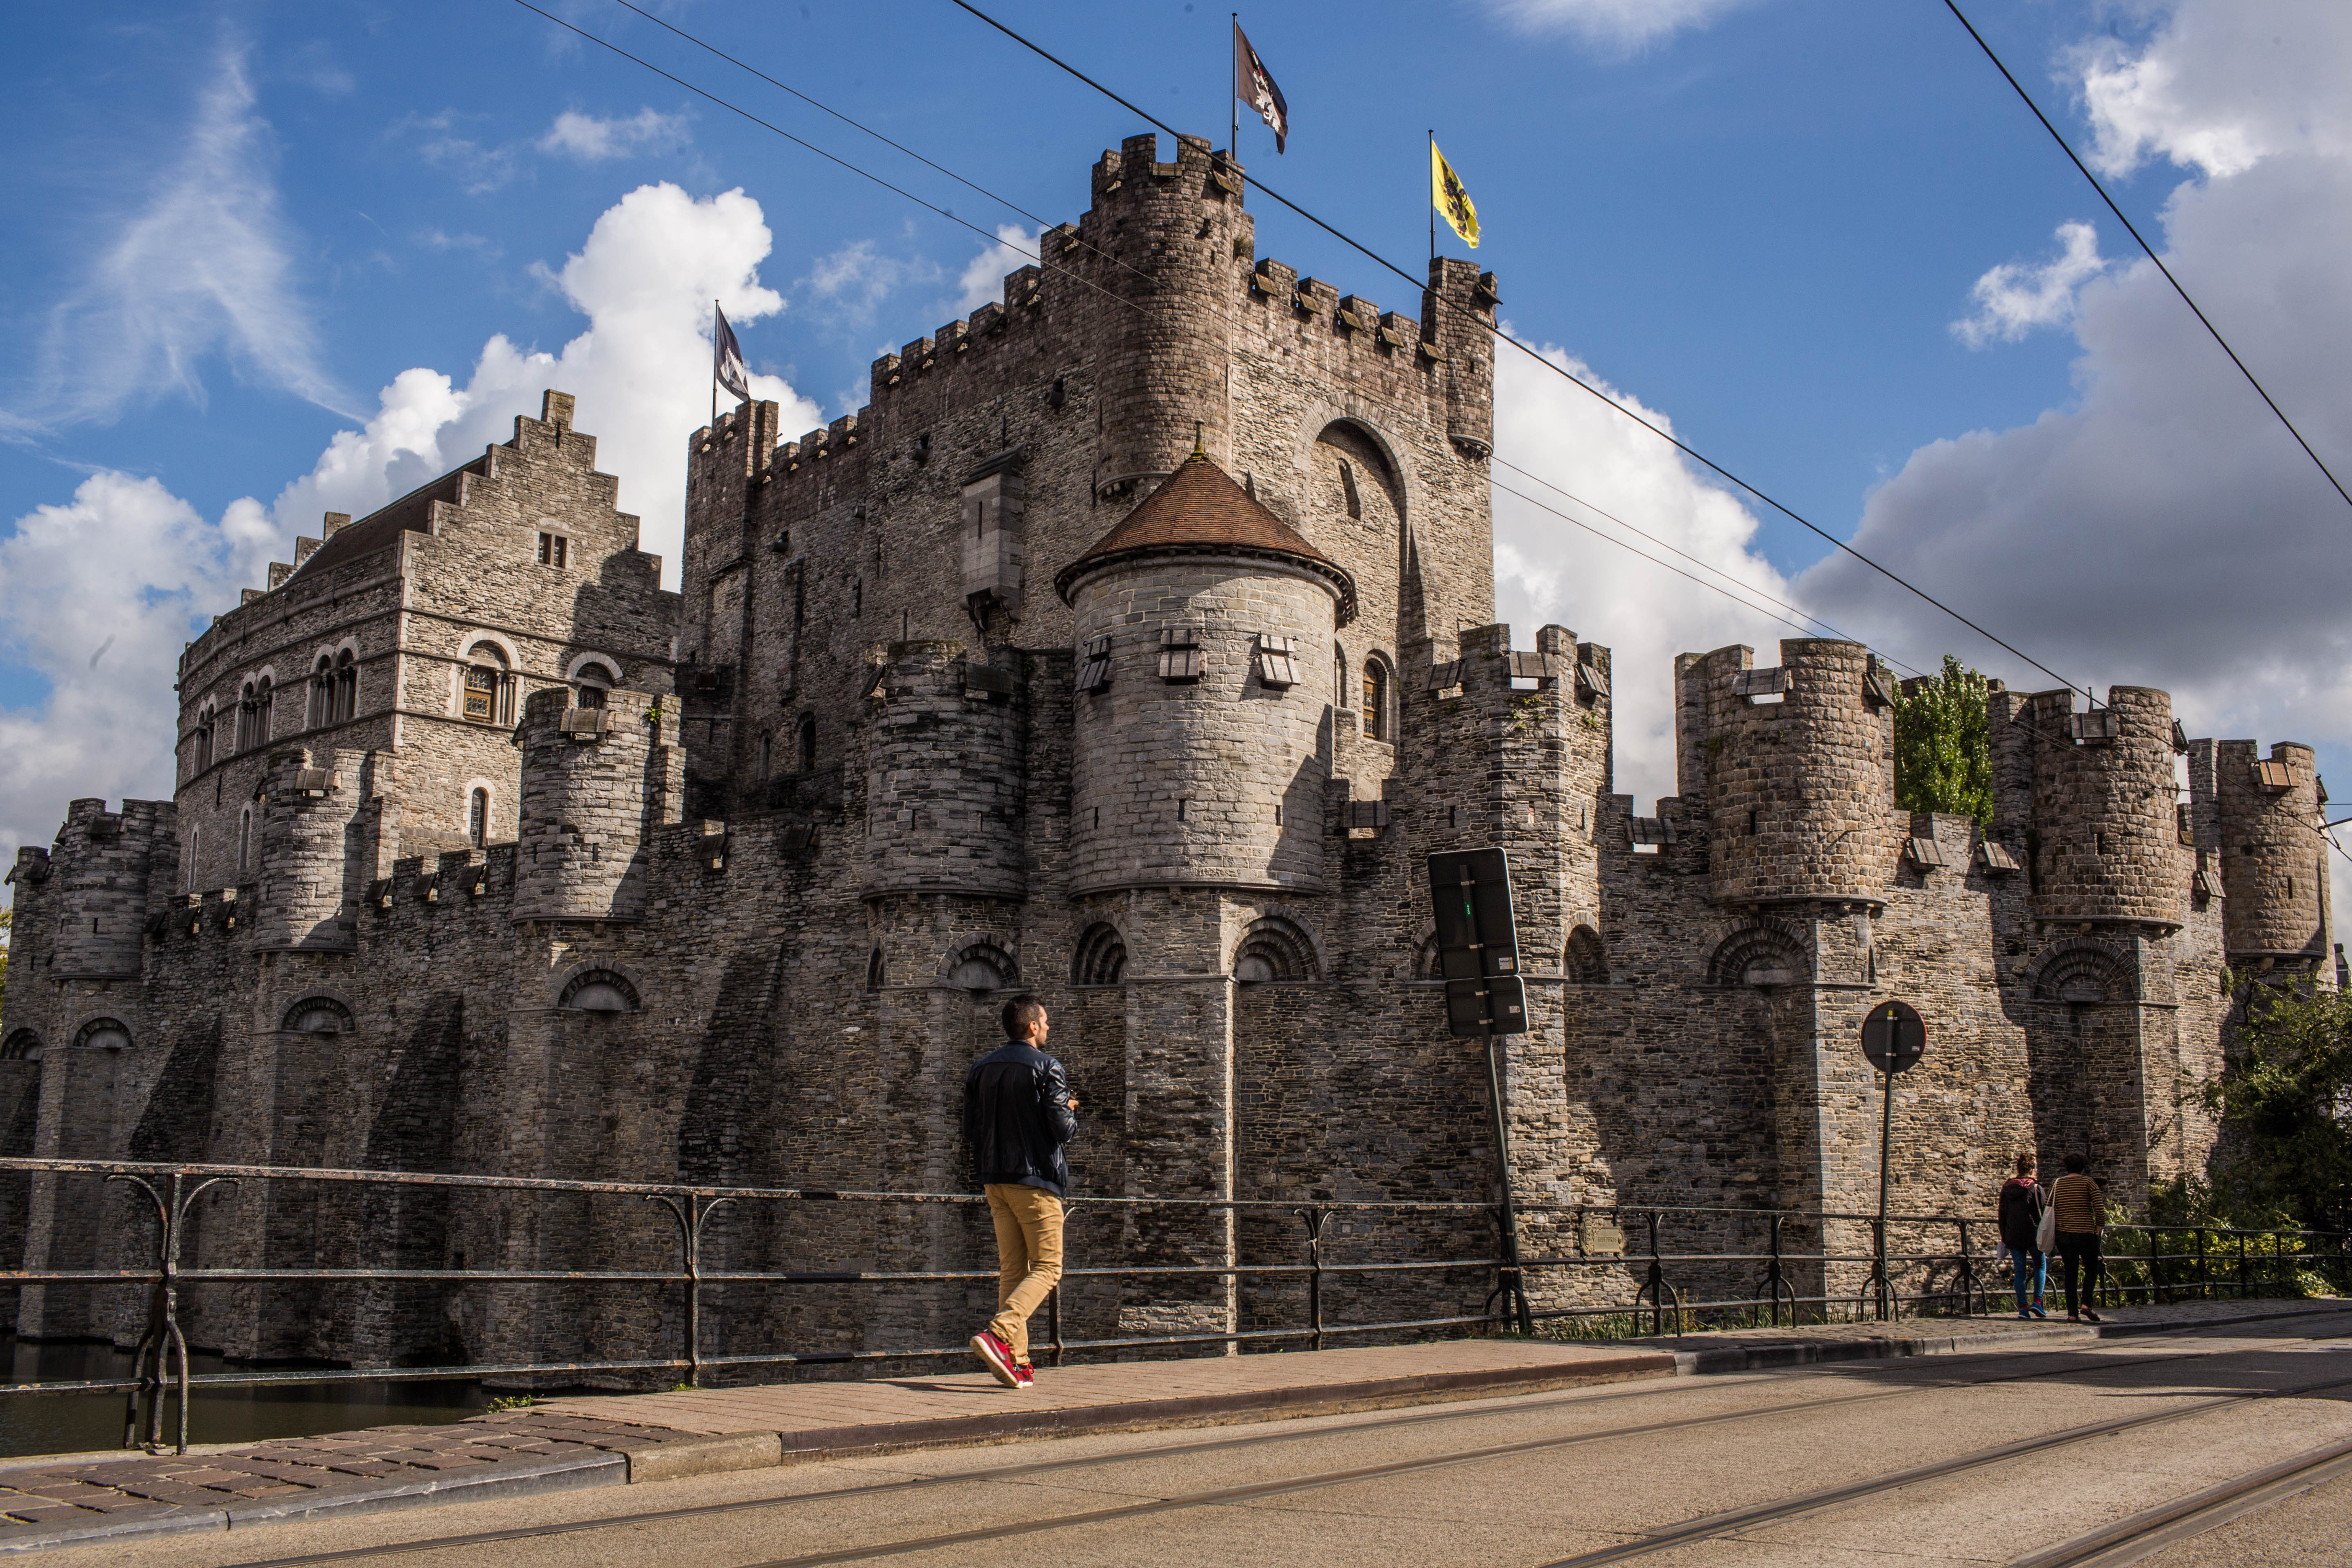 The Castle of the Counts | Visit Gent